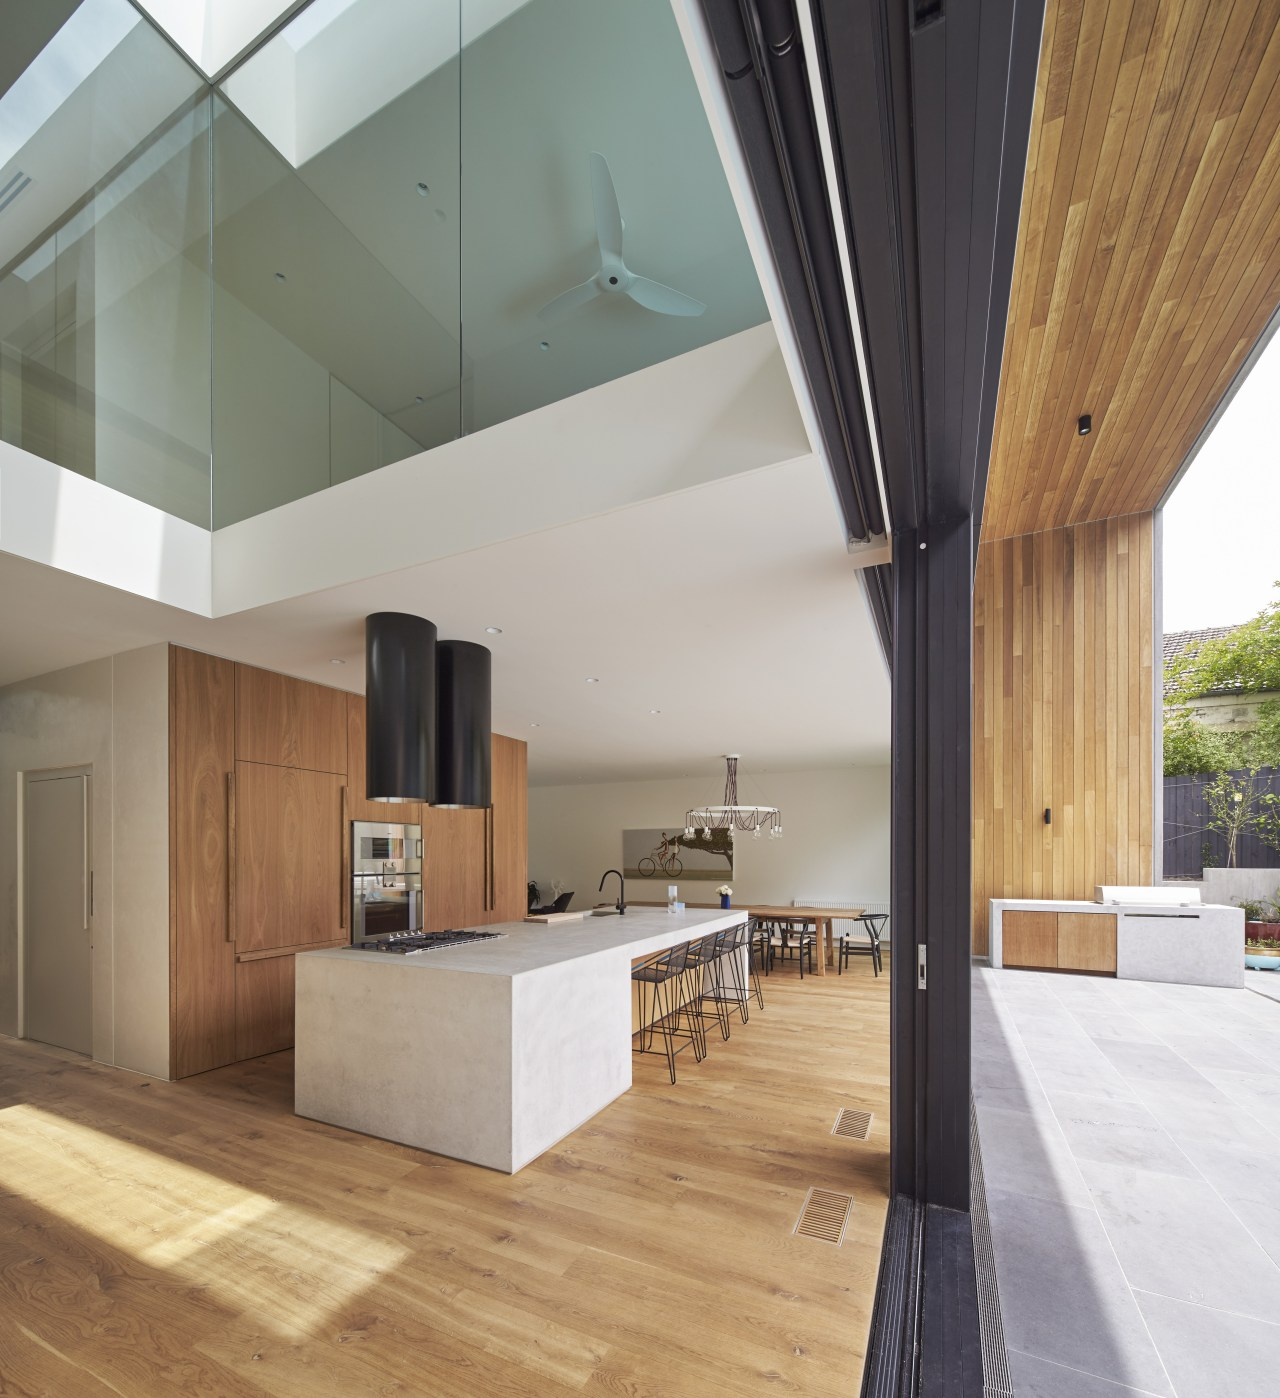 The rear facade is fully operable, with glazed architecture, ceiling, daylighting, floor, flooring, hardwood, house, interior design, laminate flooring, loft, real estate, wood, wood flooring, gray